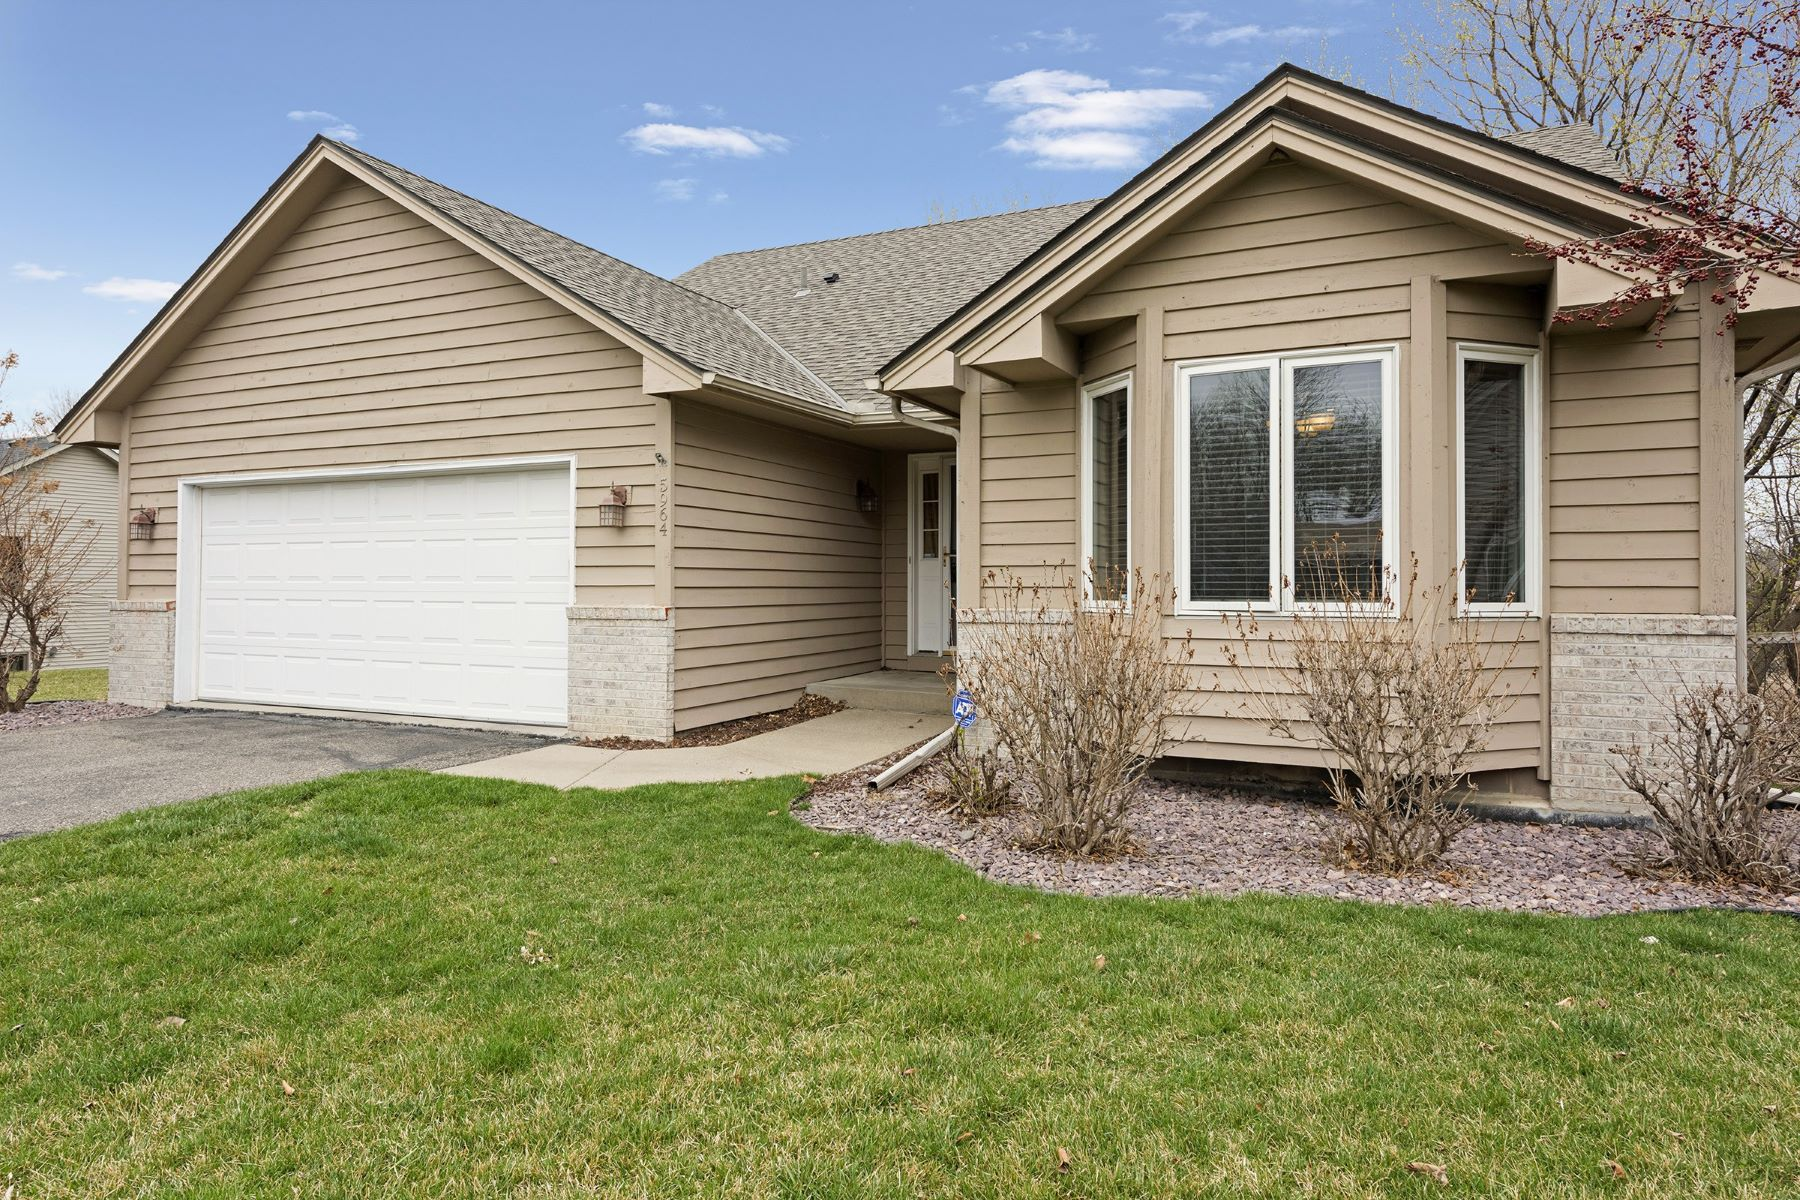 Single Family Home for Sale at 5964 W 134th Street Savage, Minnesota, 55378 United States